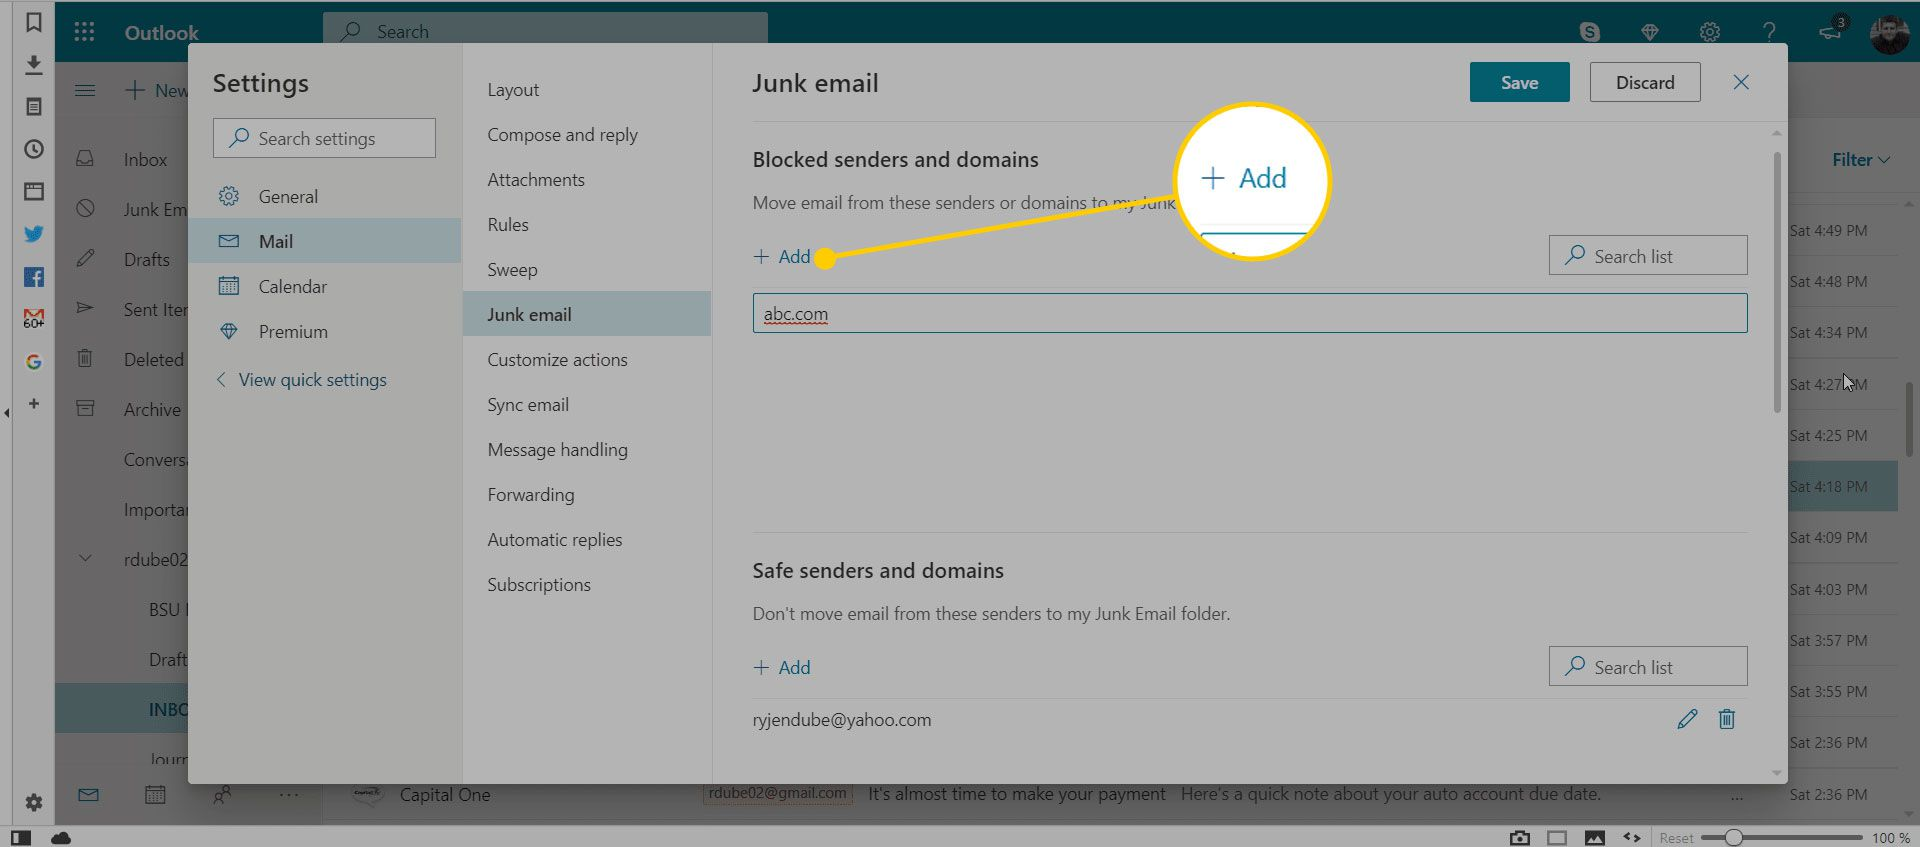 Junk email settings in Outlook with the Add button highlighted